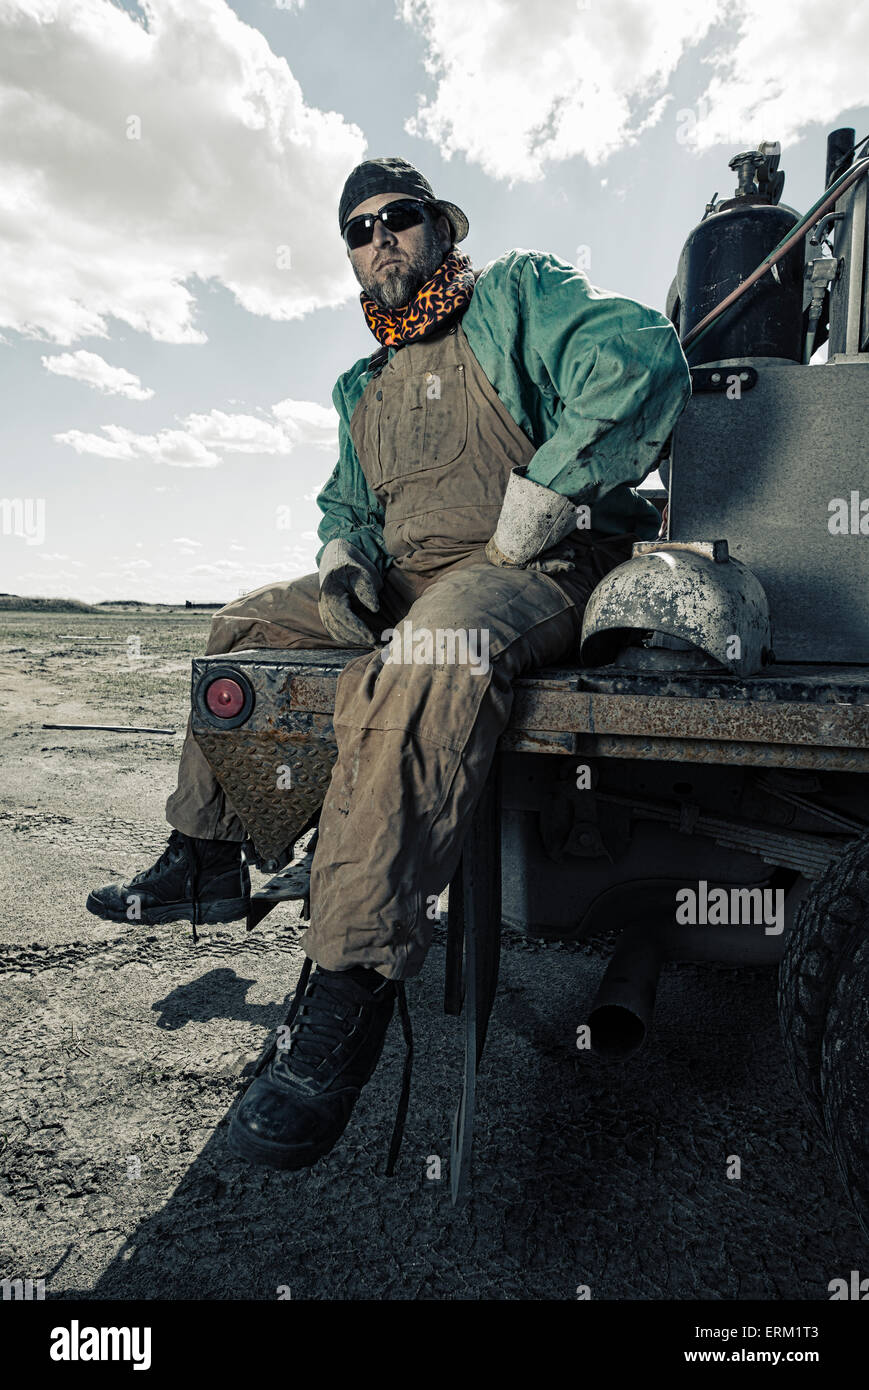 A welder seated on a truck with his gear beside him. - Stock Image